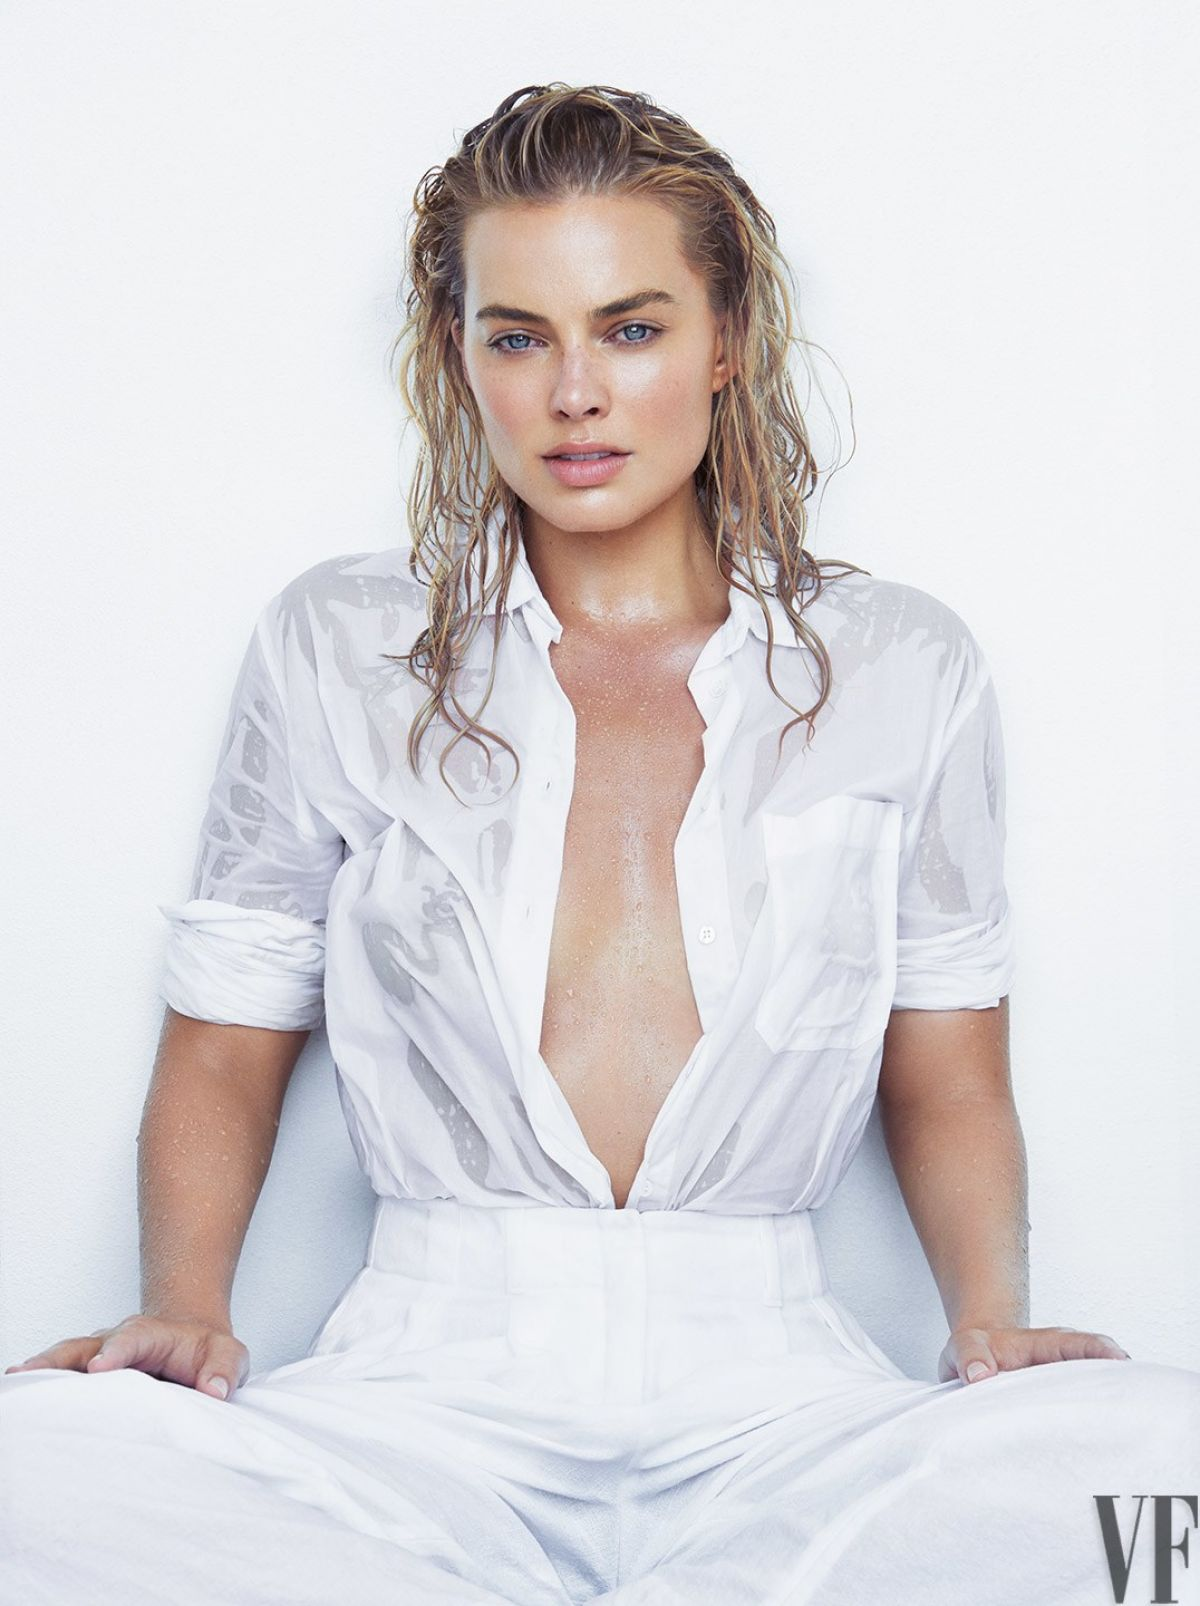 MARGOT ROBBIE in Vanity Fair Magazine, August 2016 Issue  HawtCelebs